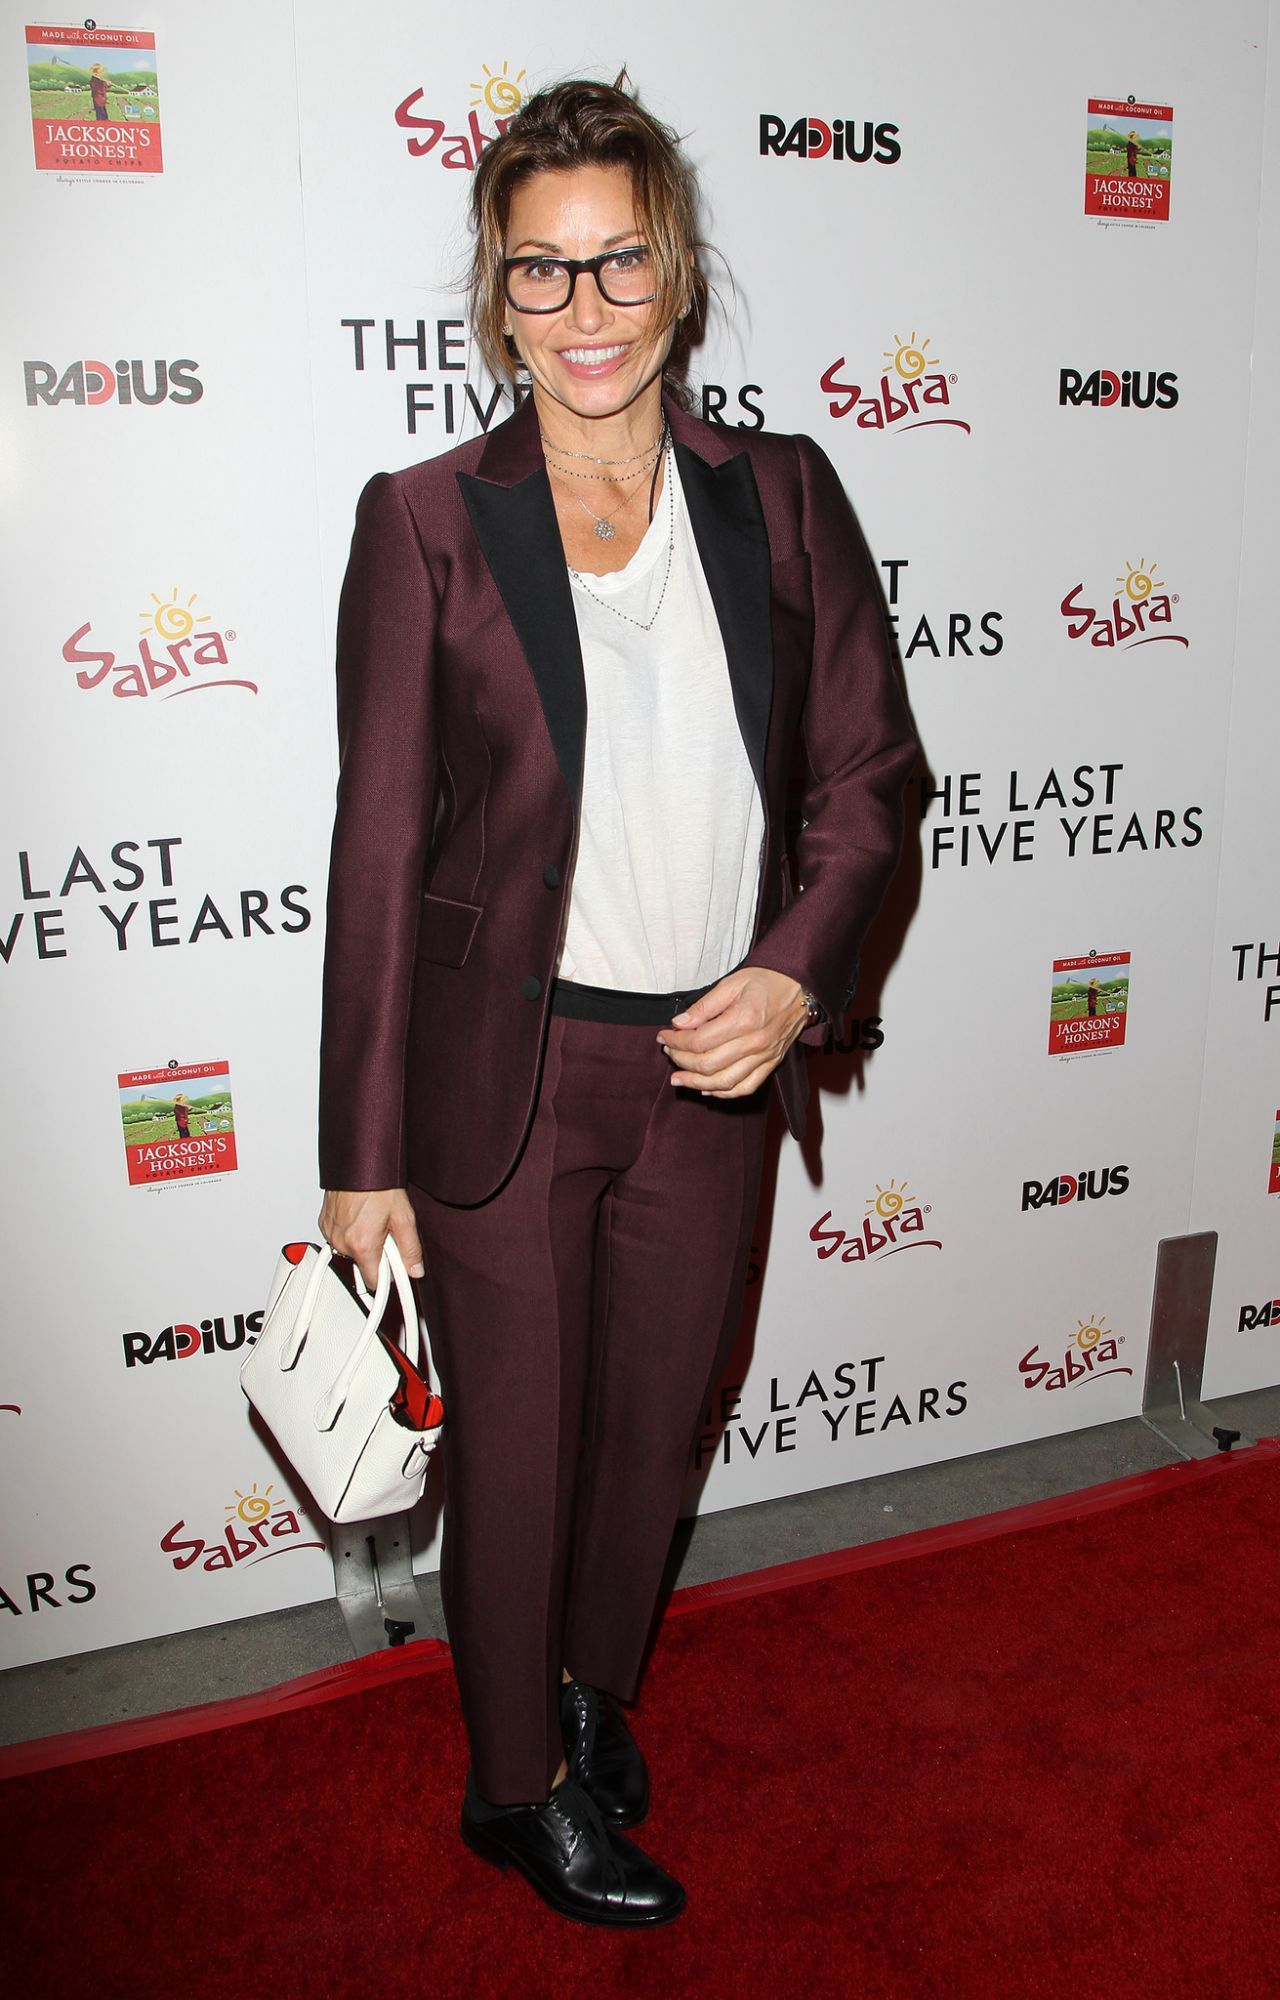 Gina Gershon At The Last Five Years Premiere In Los Angeles